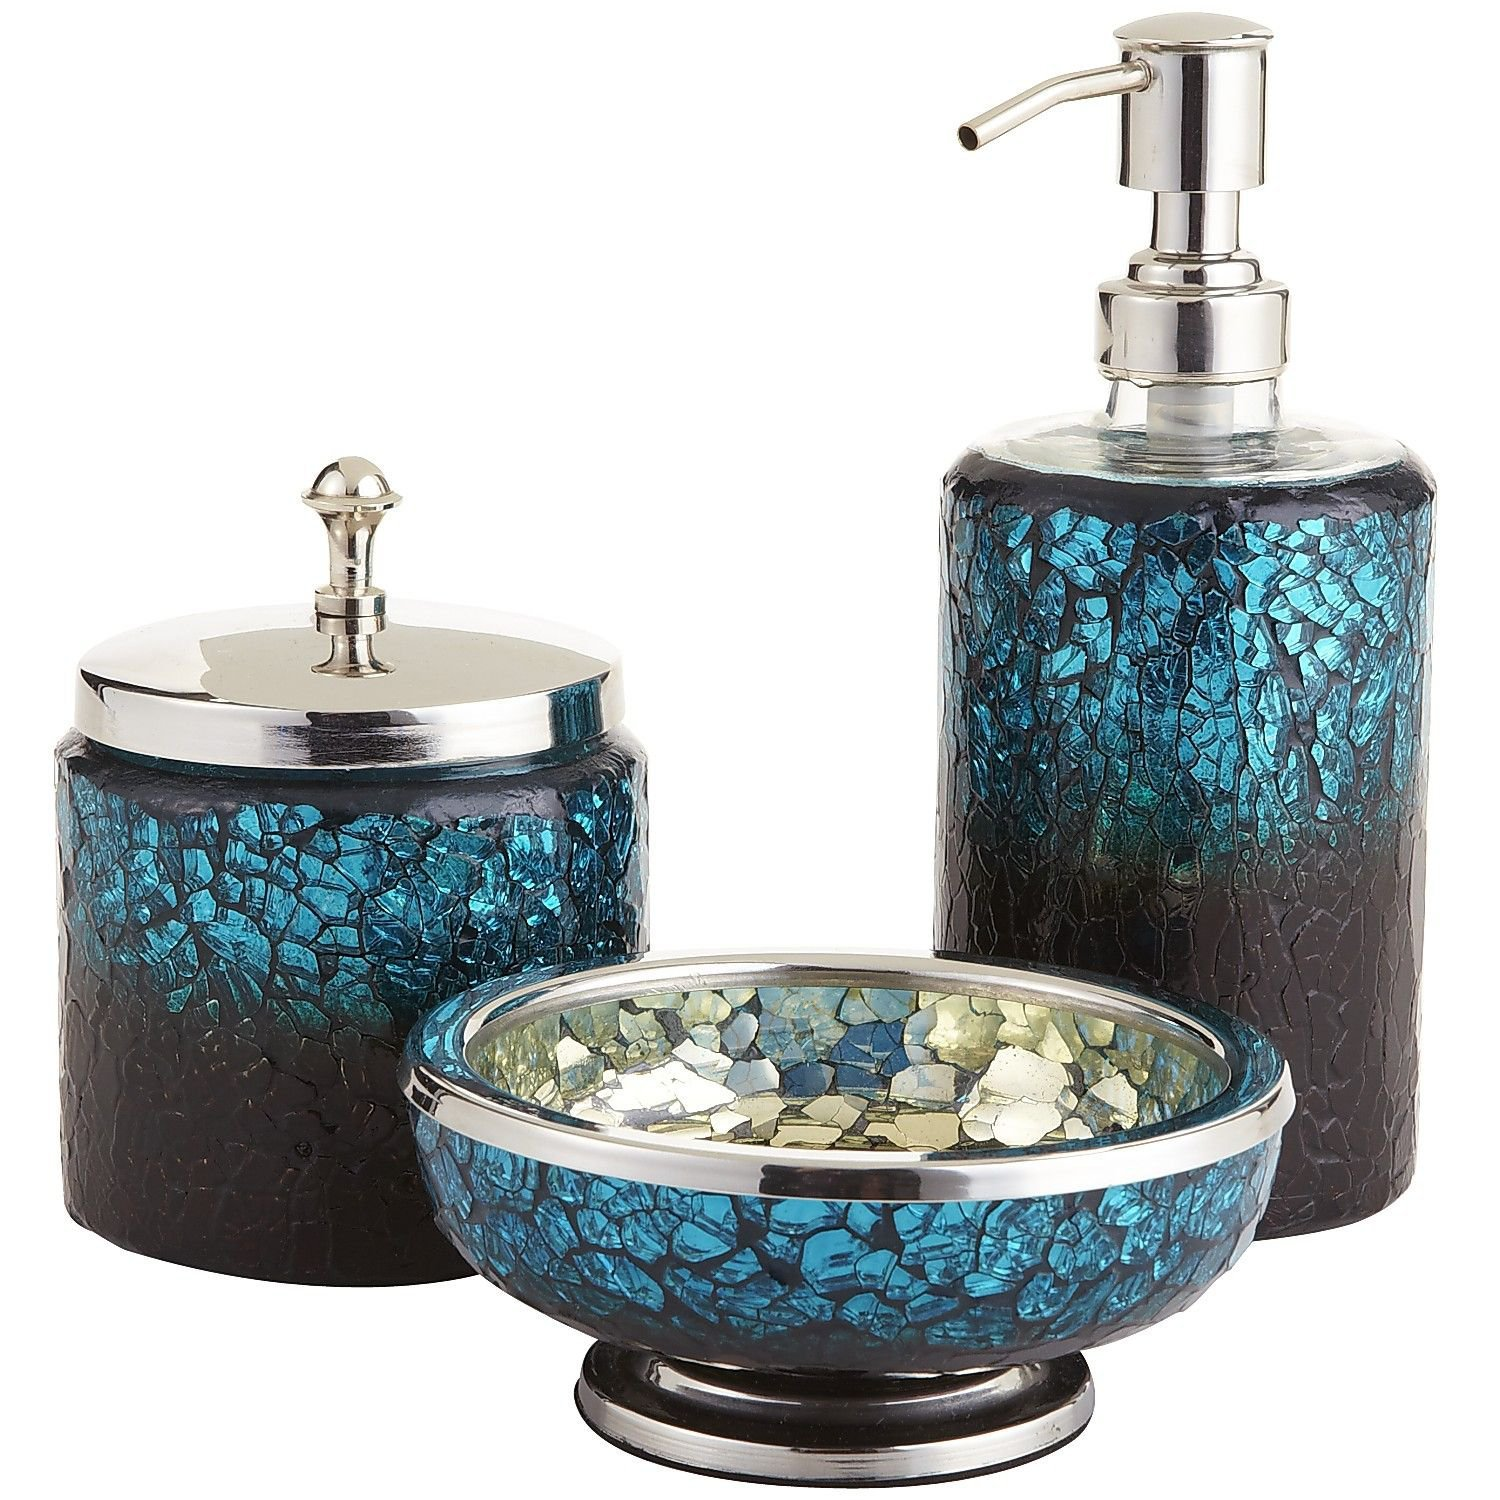 Peacock mosaic bath accessories from pier 1 imports for the for Blue mosaic bathroom accessories